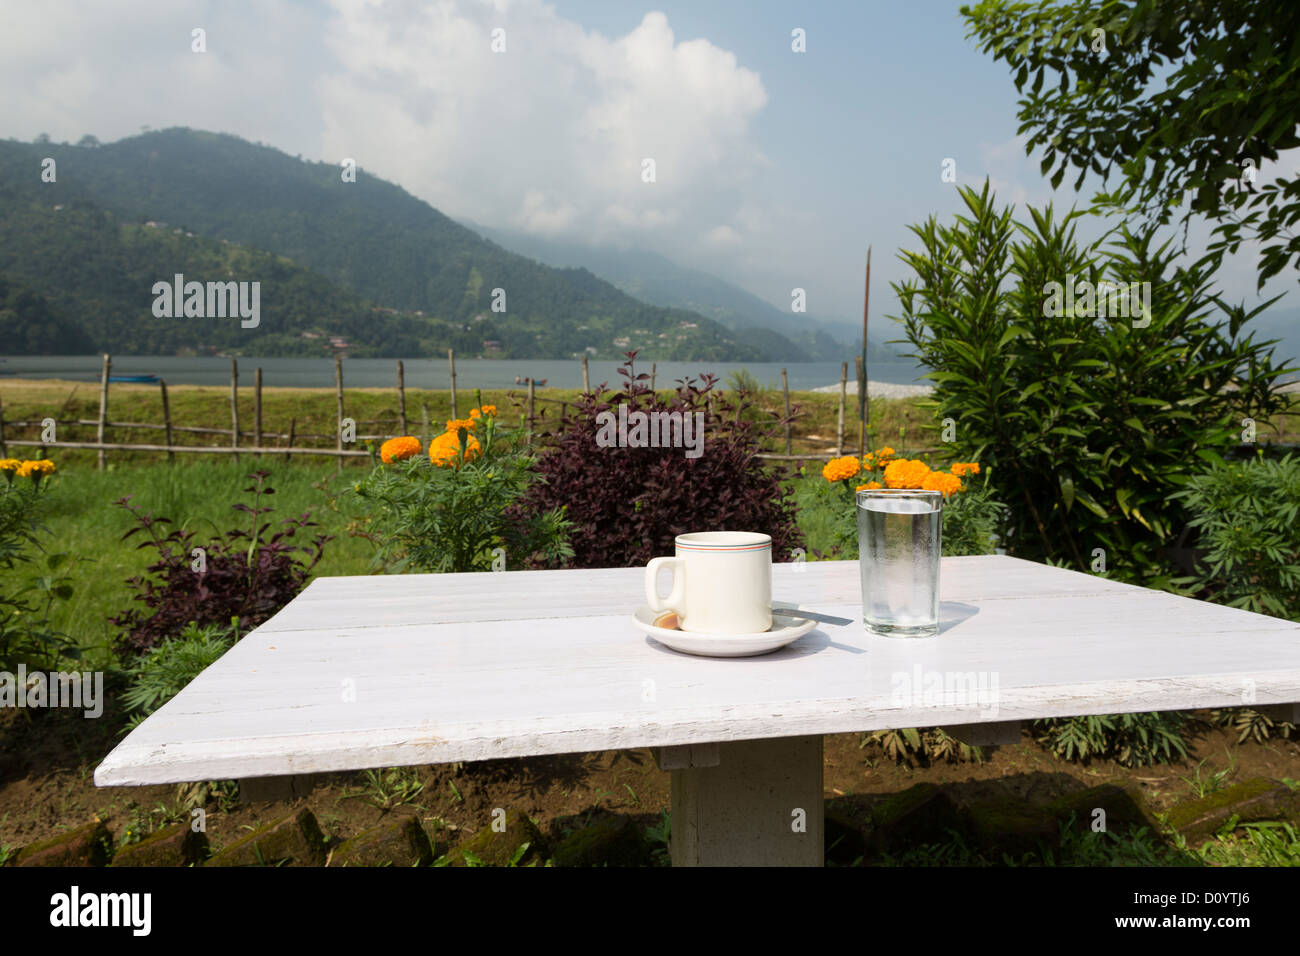 cup of coffe and a glass of water on a simple wooden table by the stunning Phewa lake in Pokhara in Nepal. - Stock Image